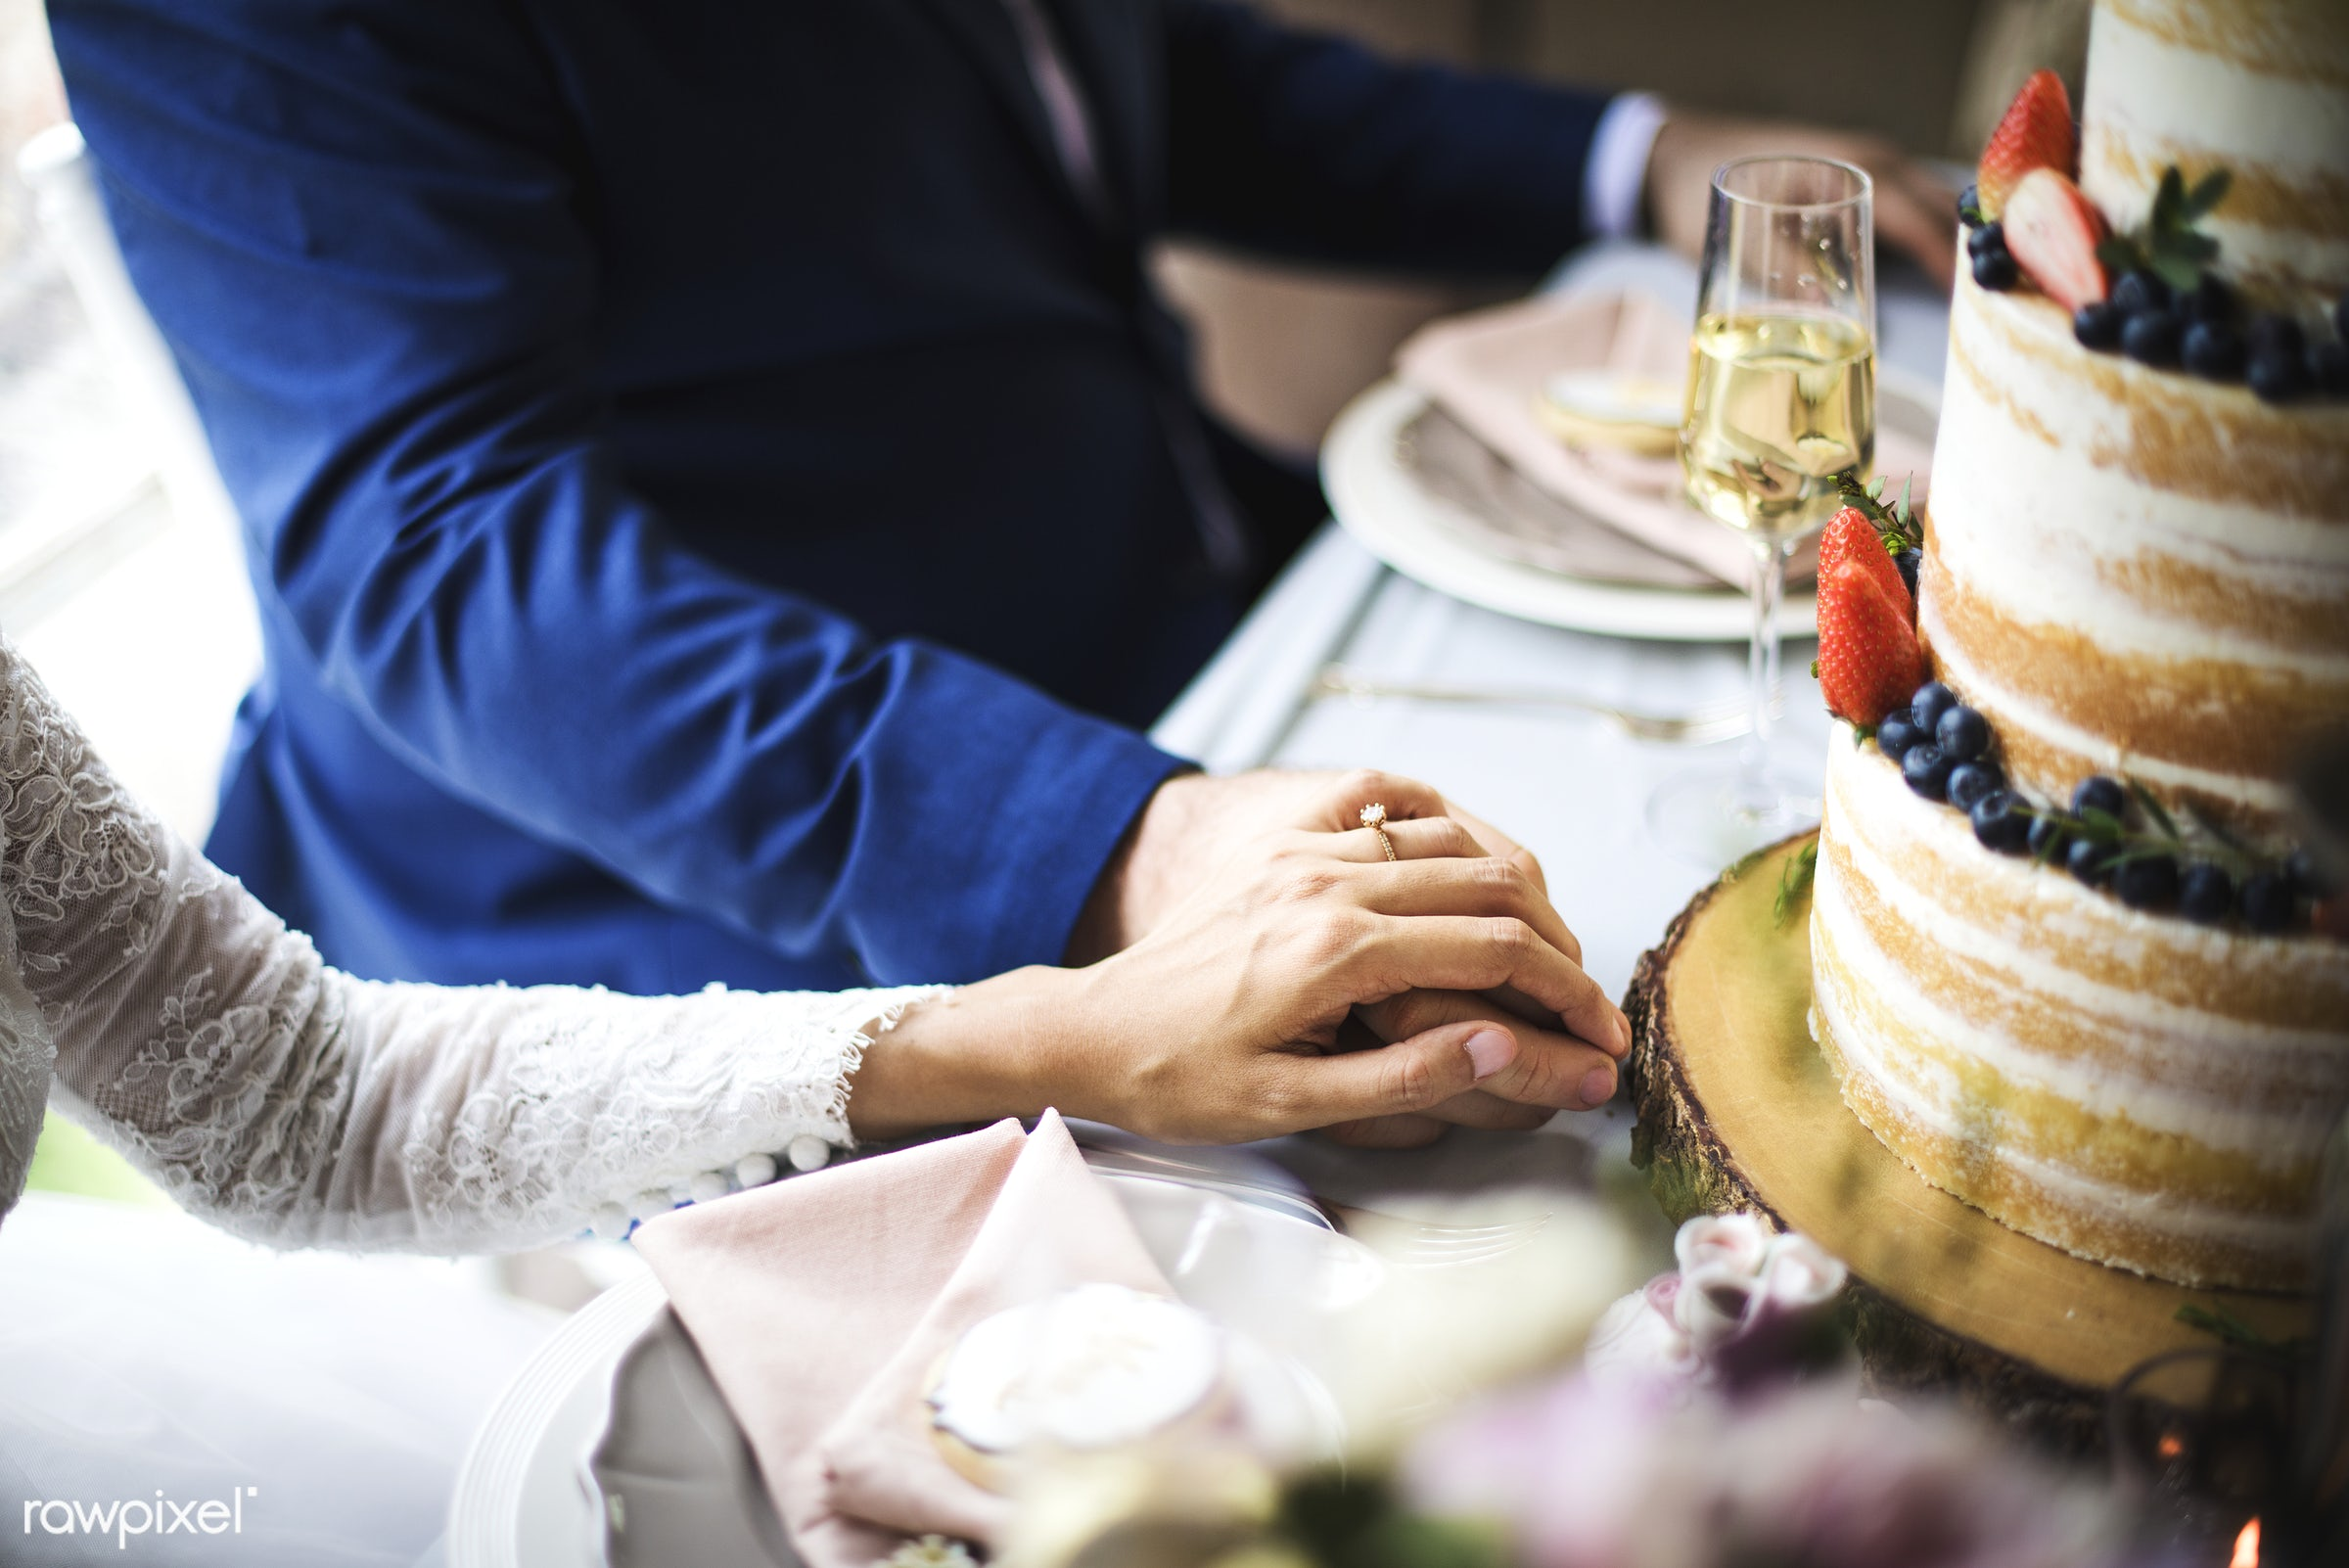 holding, party, people, together, love, married, hands, banquet, couple, bride, closeup, ring, cake, newlywed, togetherness...